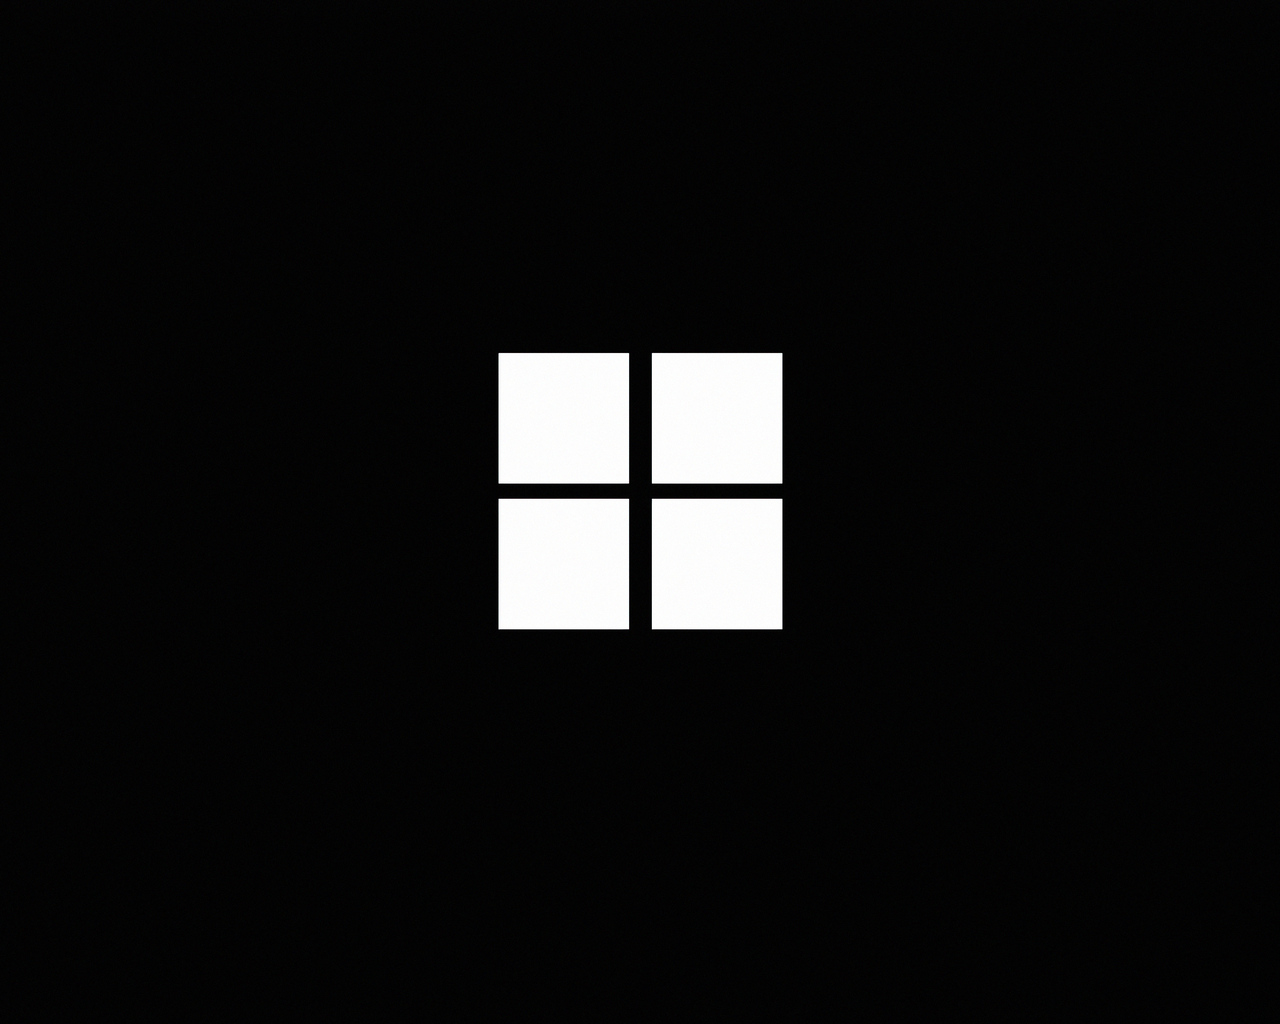 minimalistic-windows-logo-black-4k-4j.jpg